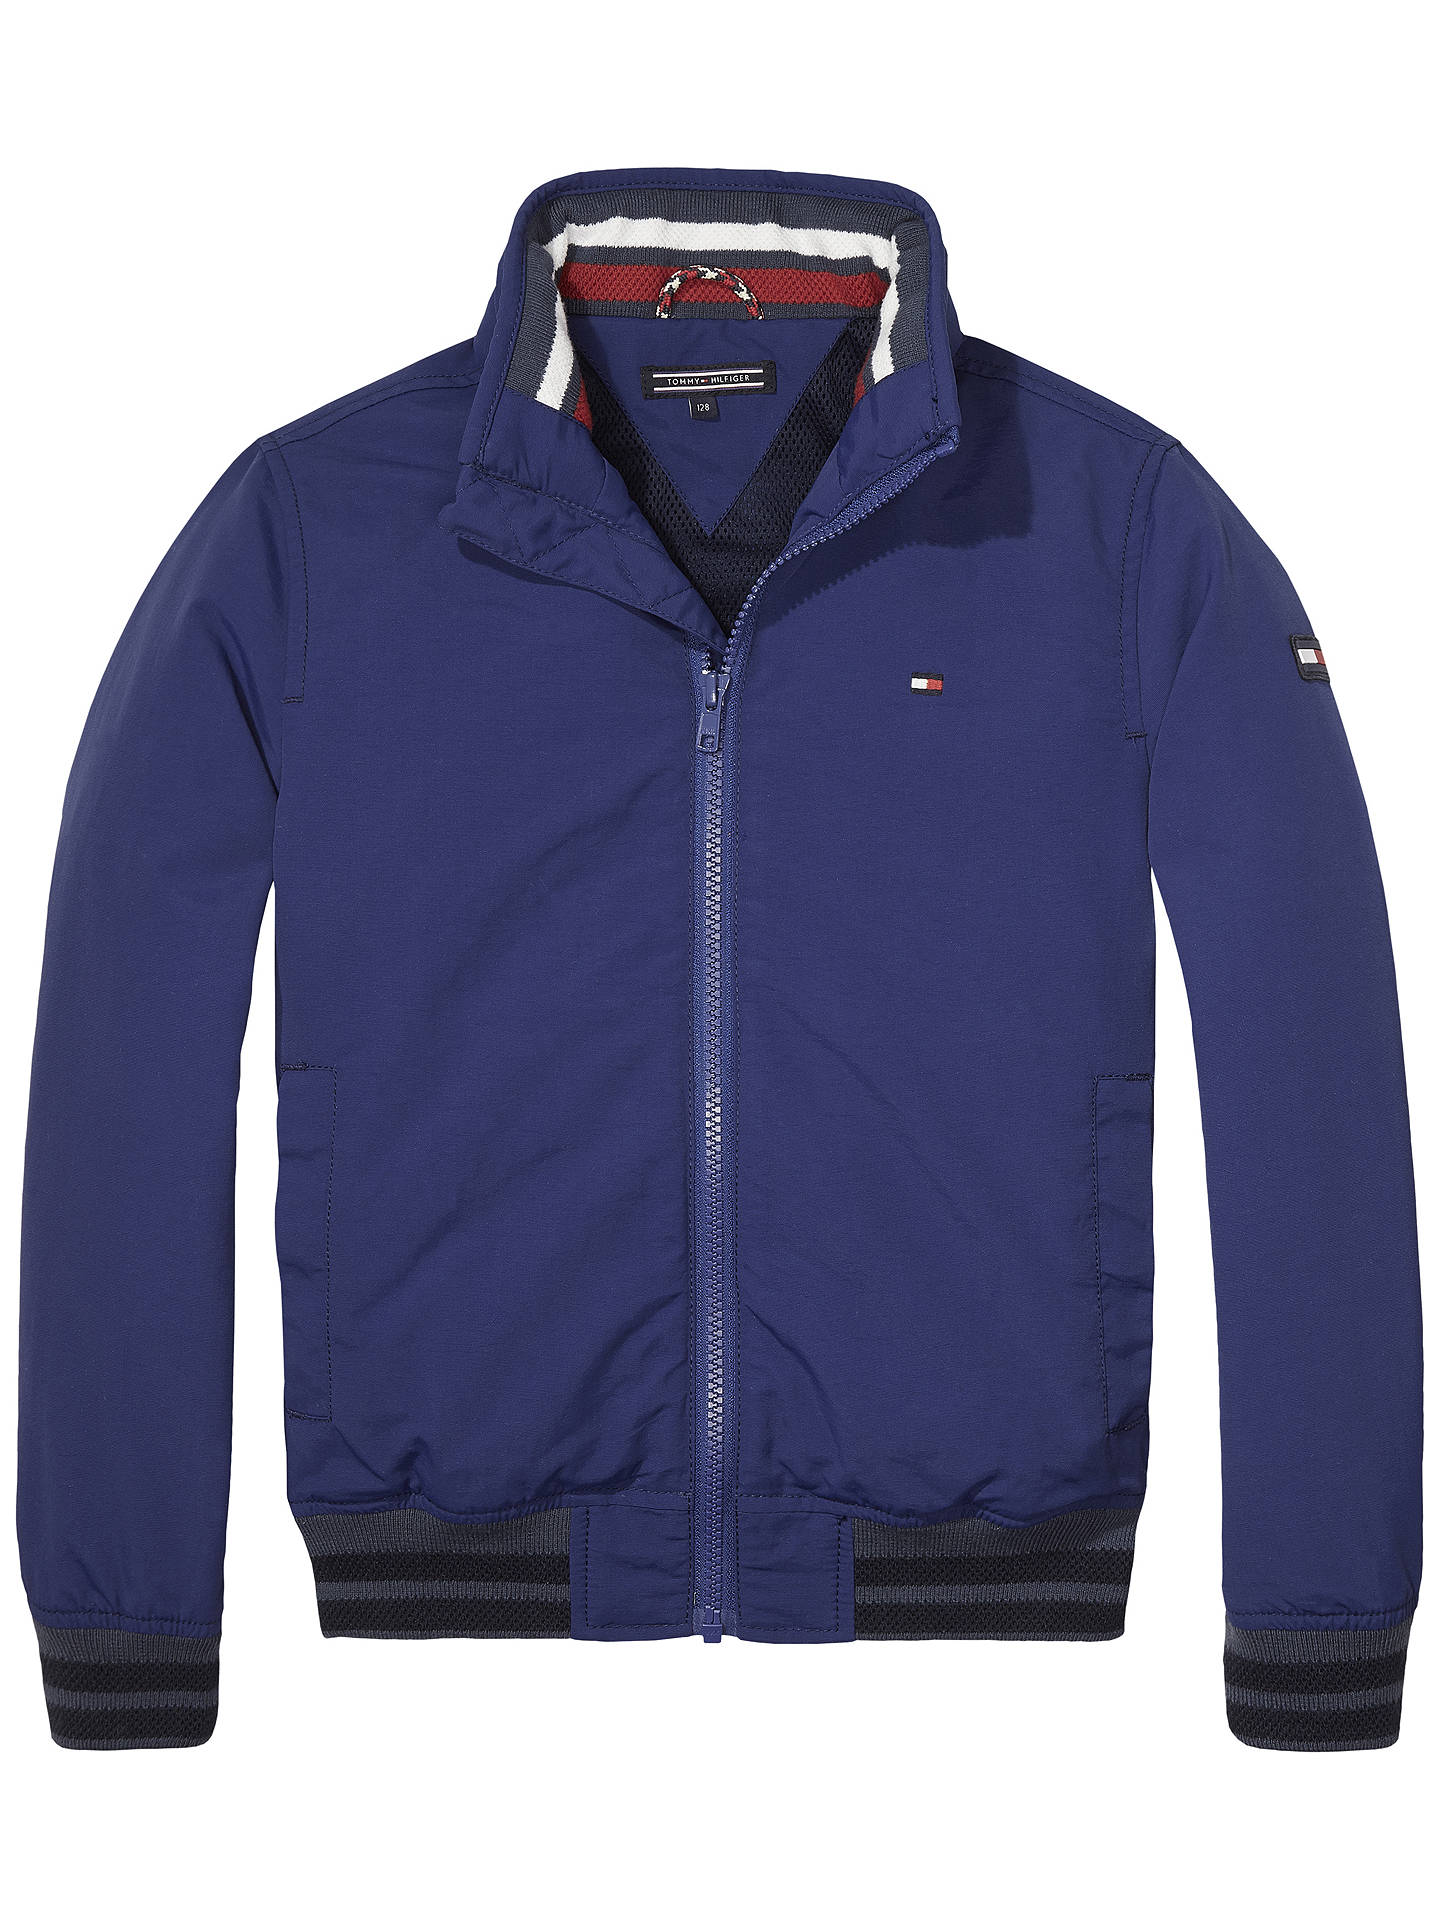 fb072d36 Buy Tommy Hilfiger Boys' Ame Bomber Jacket, Navy, 8 years Online at  johnlewis ...